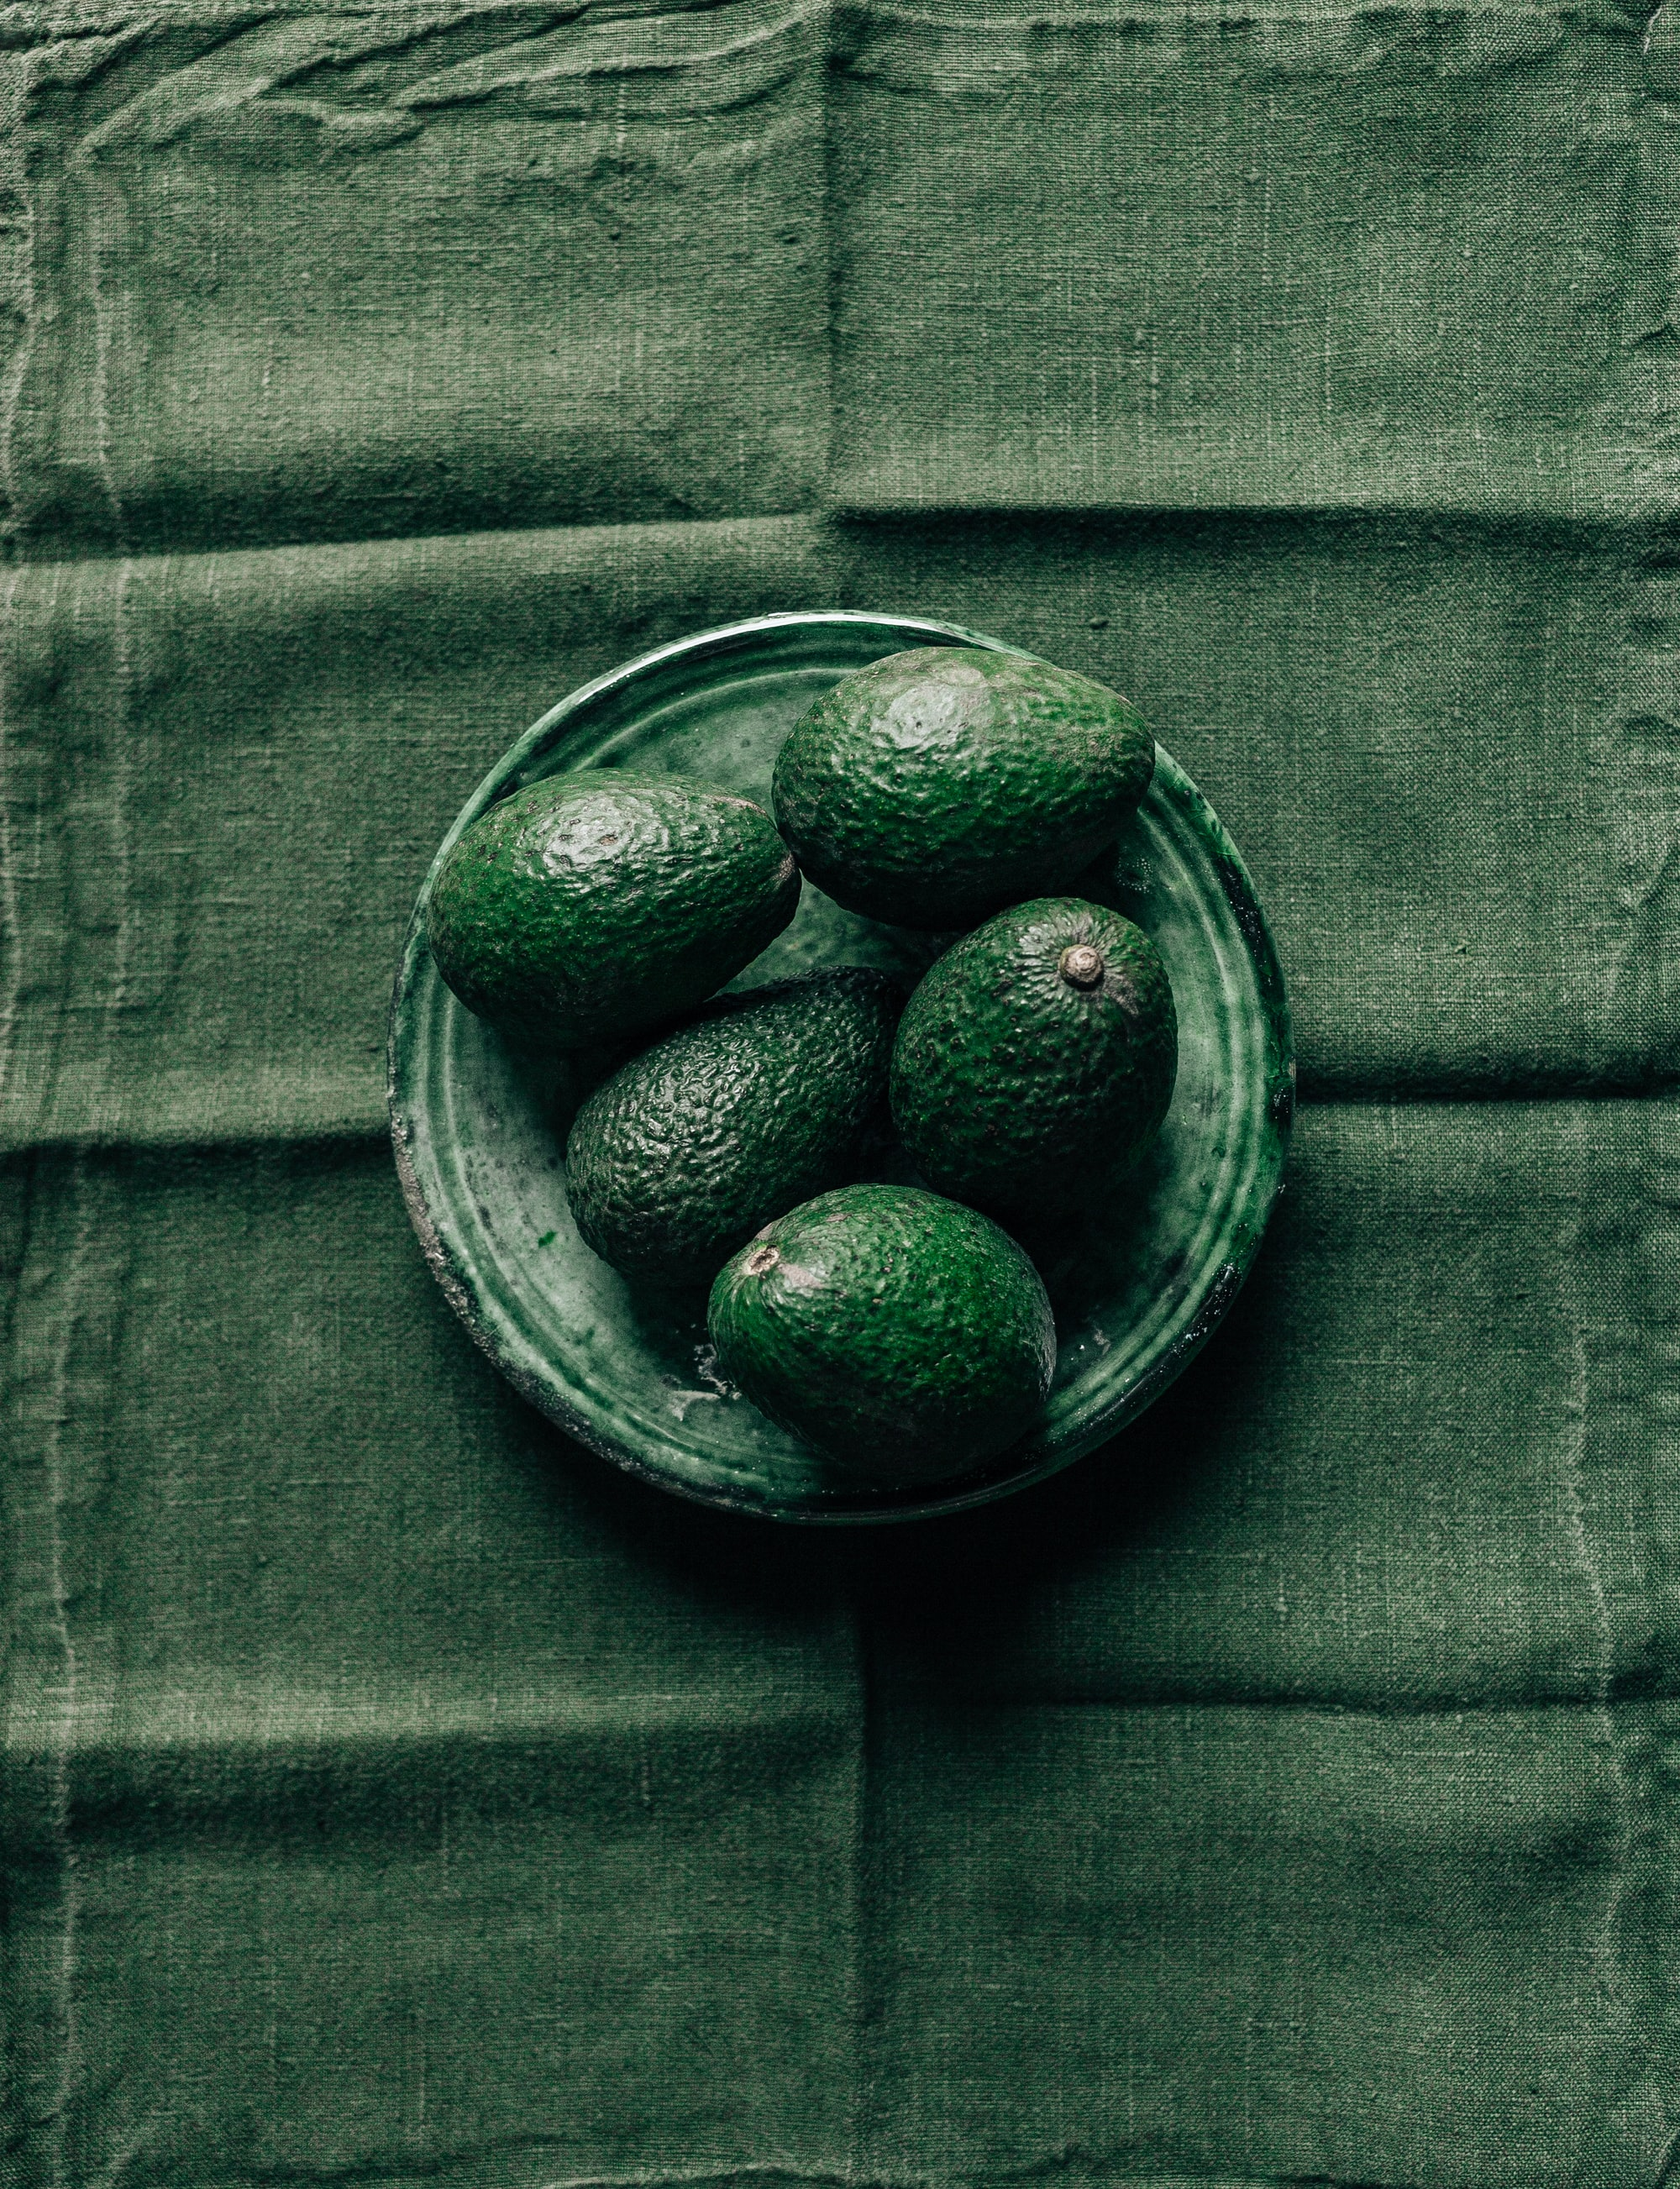 Avocados against Moroccan pottery and Japanese linens.